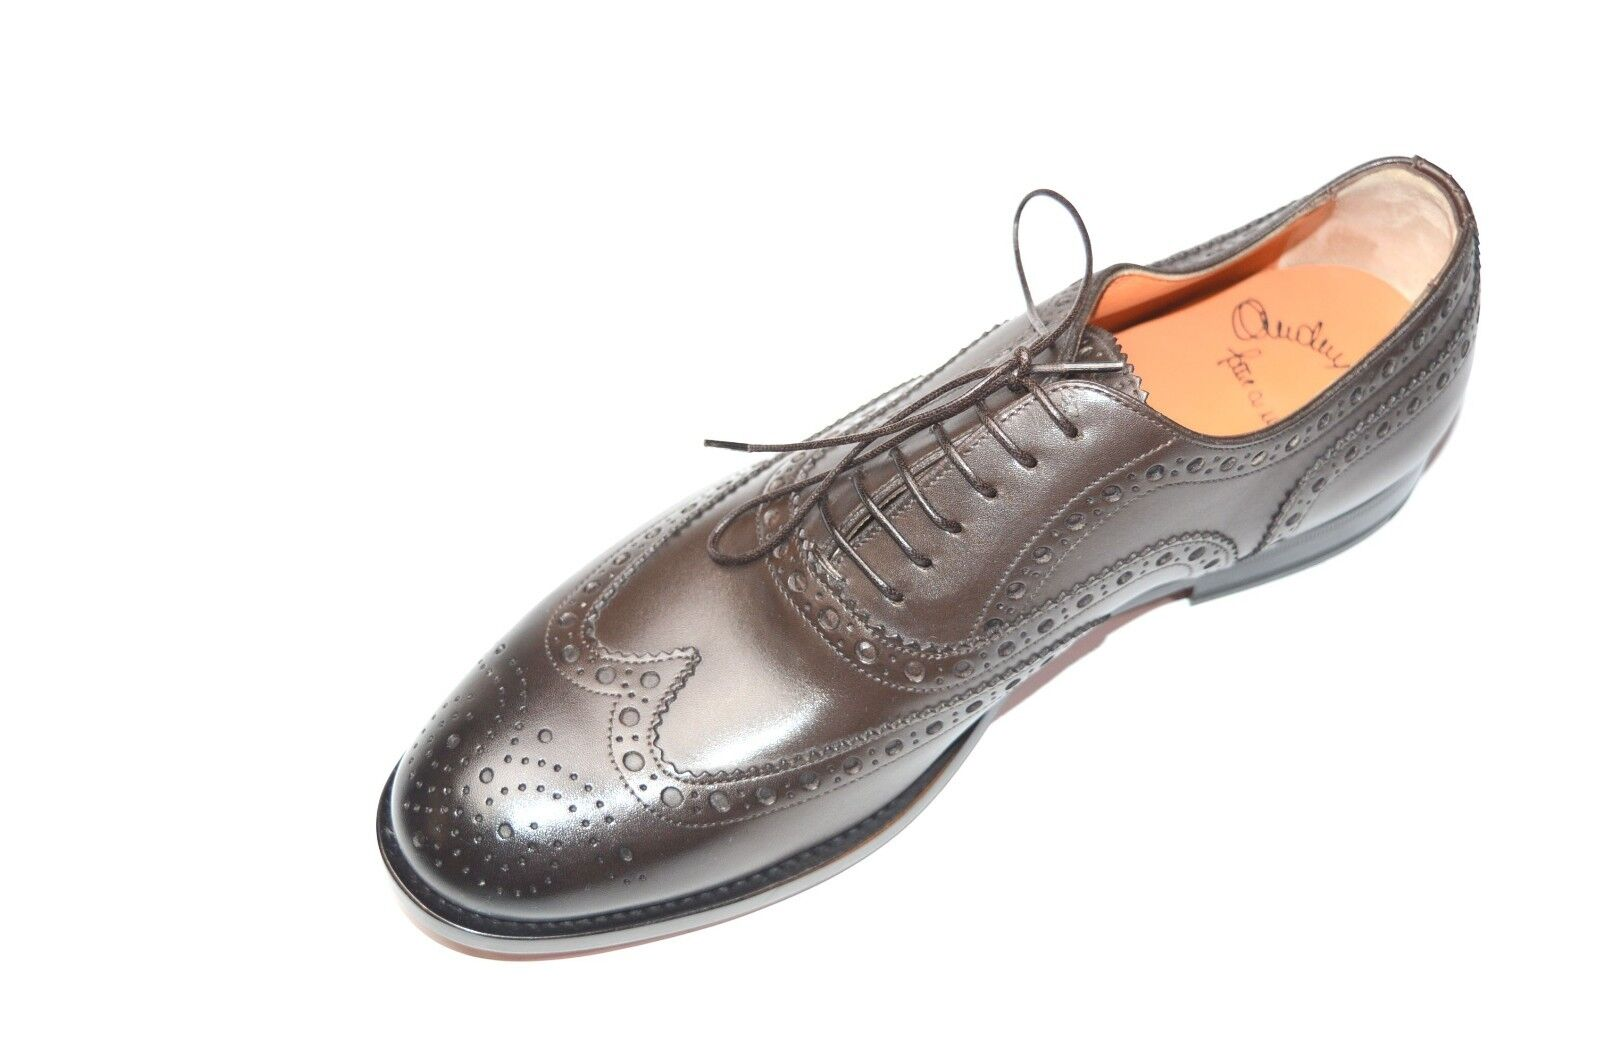 NEW NEW NEW SANTONI Dress Brown Pelle Shoes  SIZE Eu 46 Uk 12 Us 13 (50R) 099a30